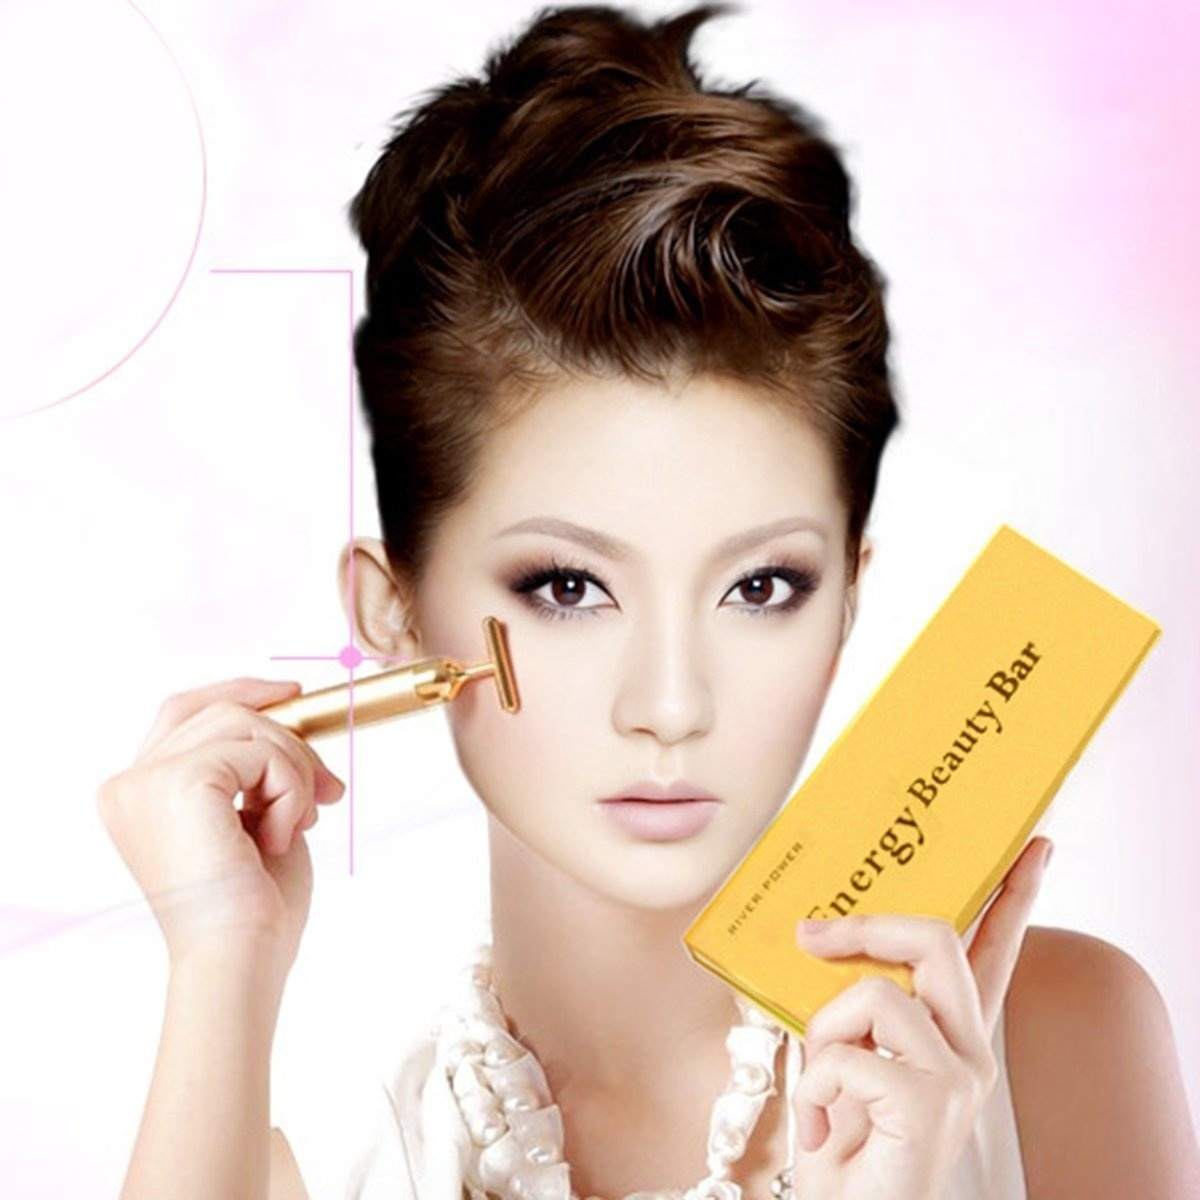 Gold Beauty Bar Anti Wrinkles Face Lift Skin Tightening Face Firming